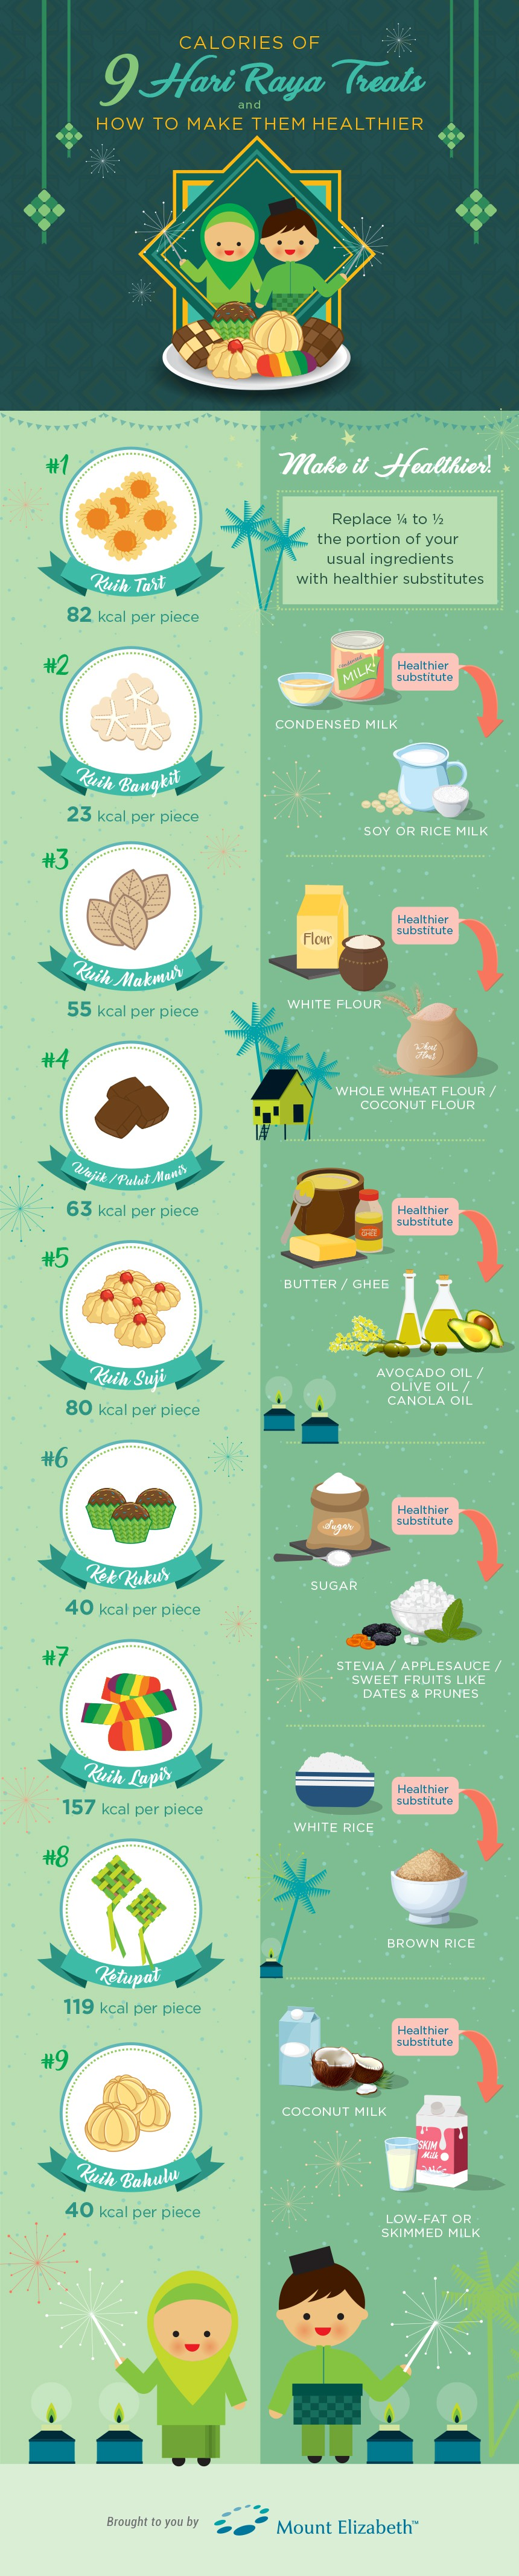 Calories in 9 Hari Raya Treats and How to Make Them.